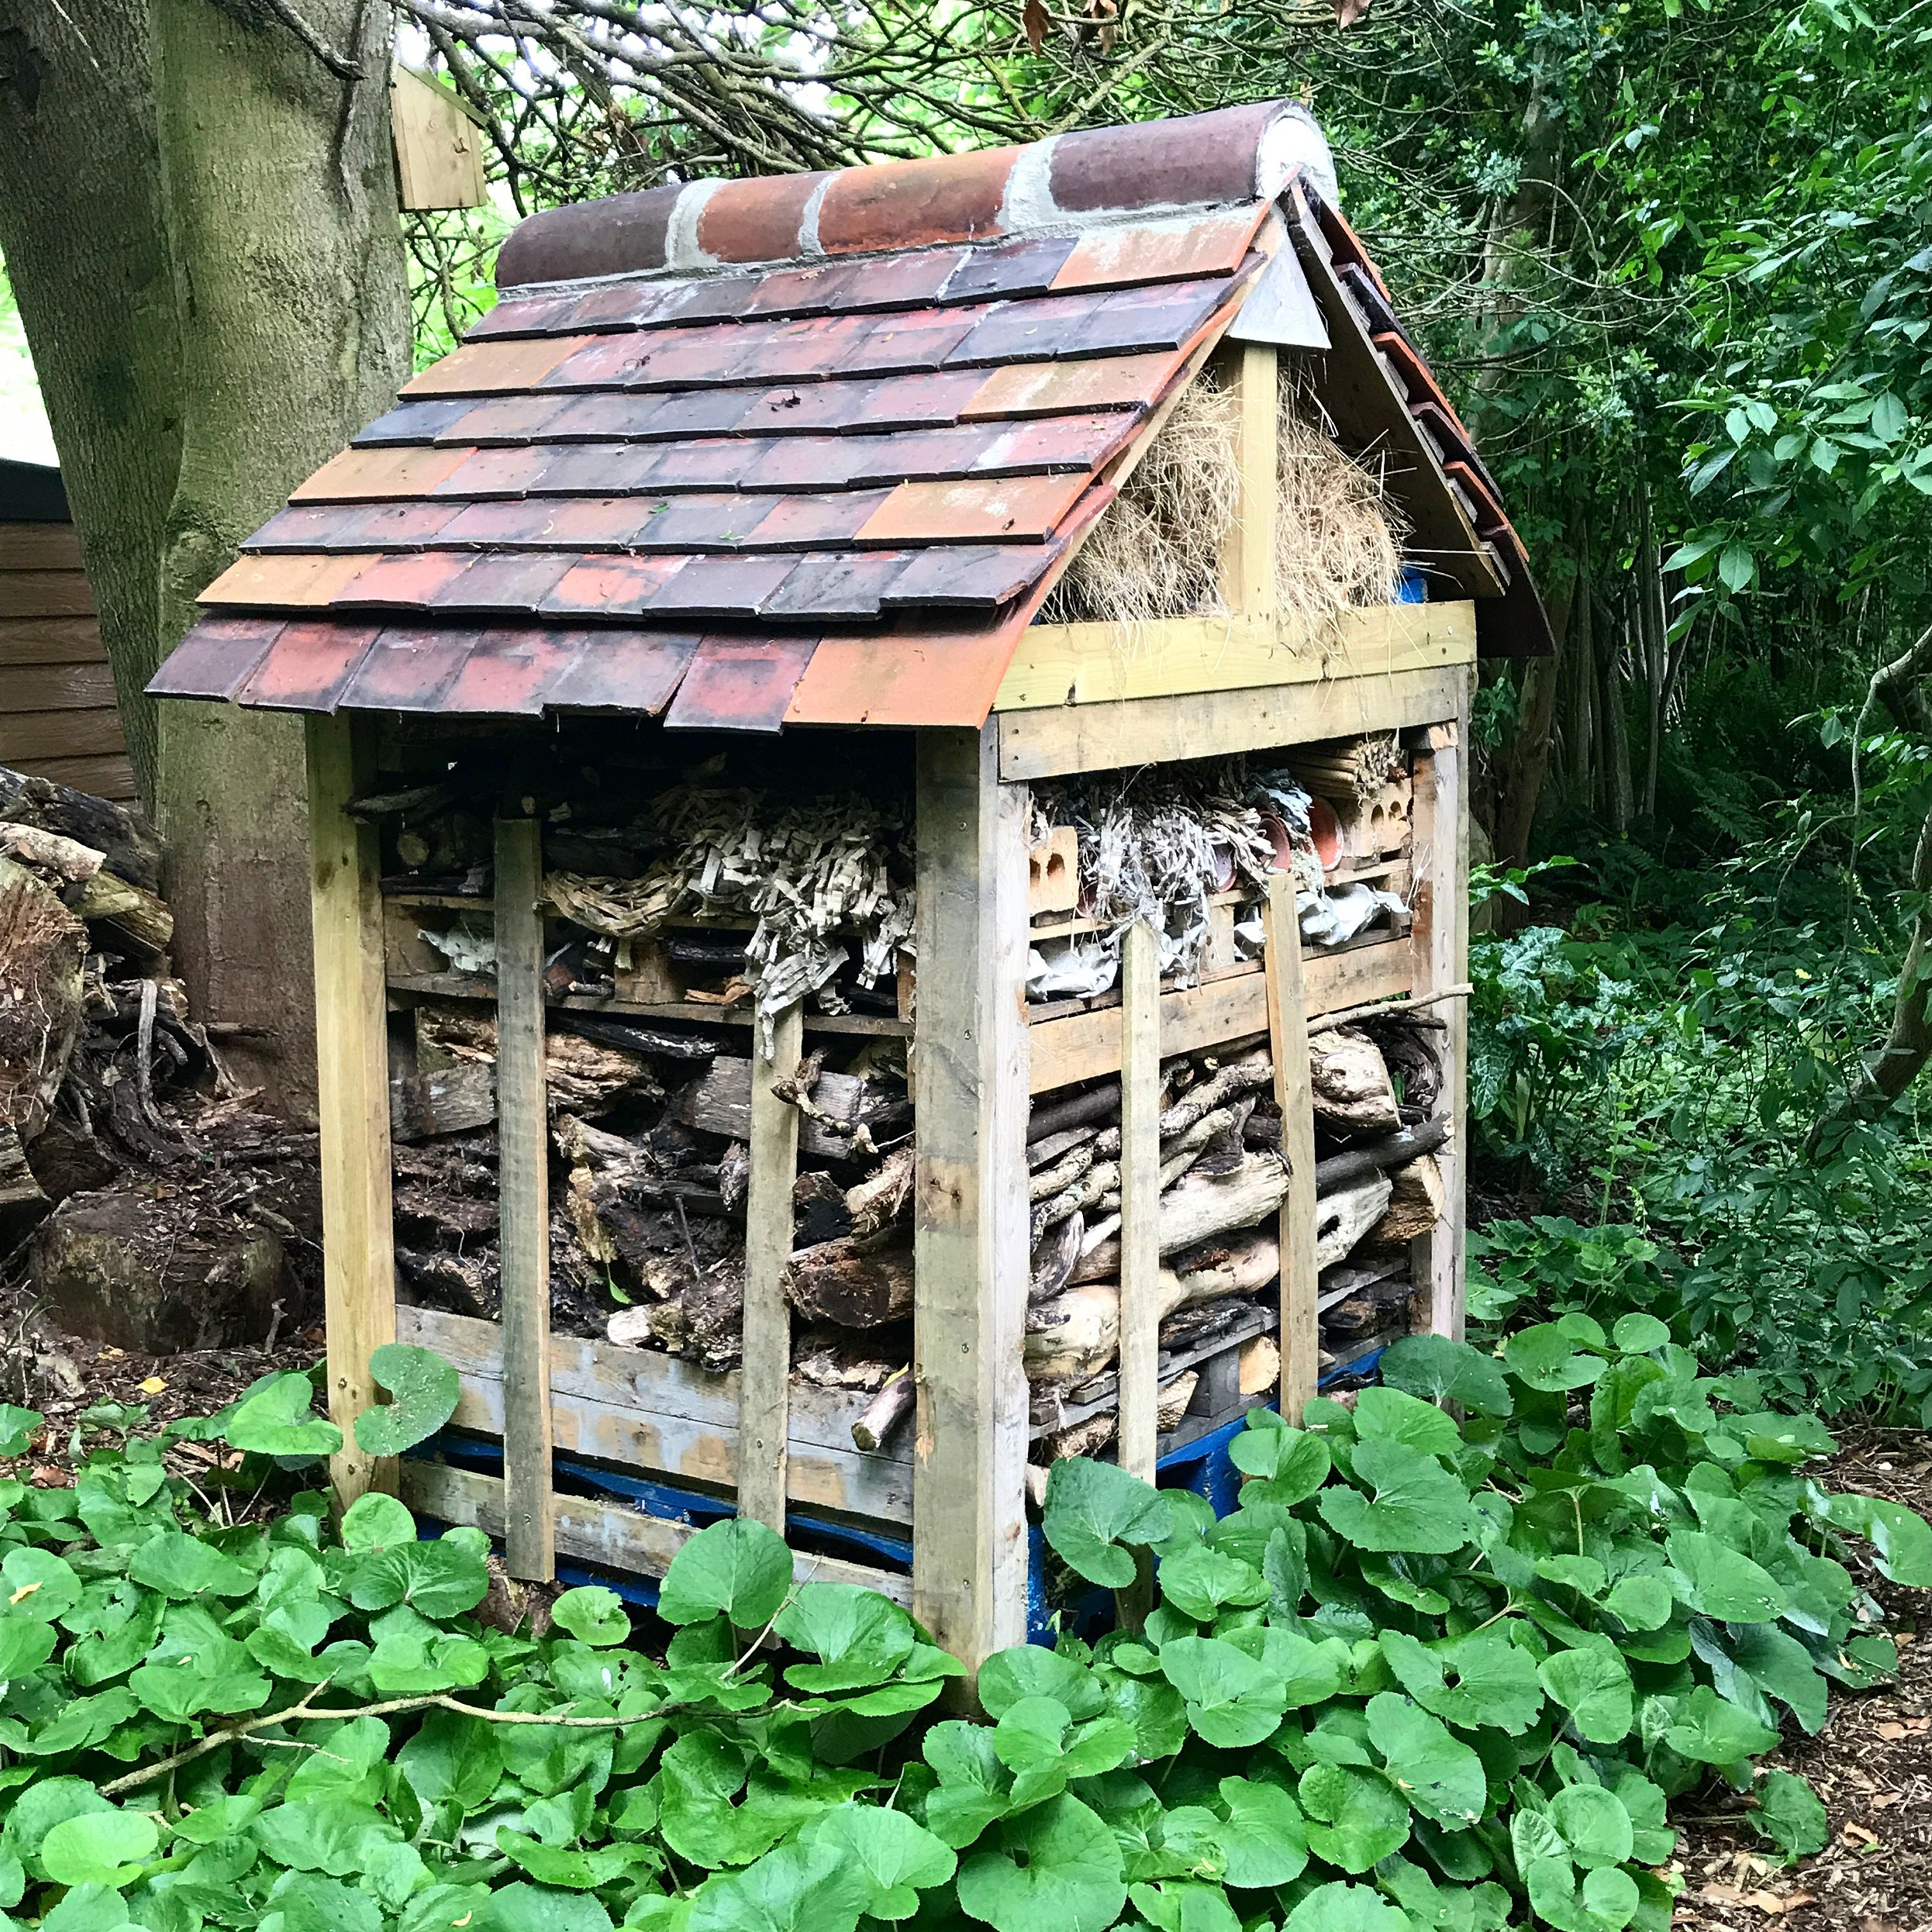 Bug hotel or insect house